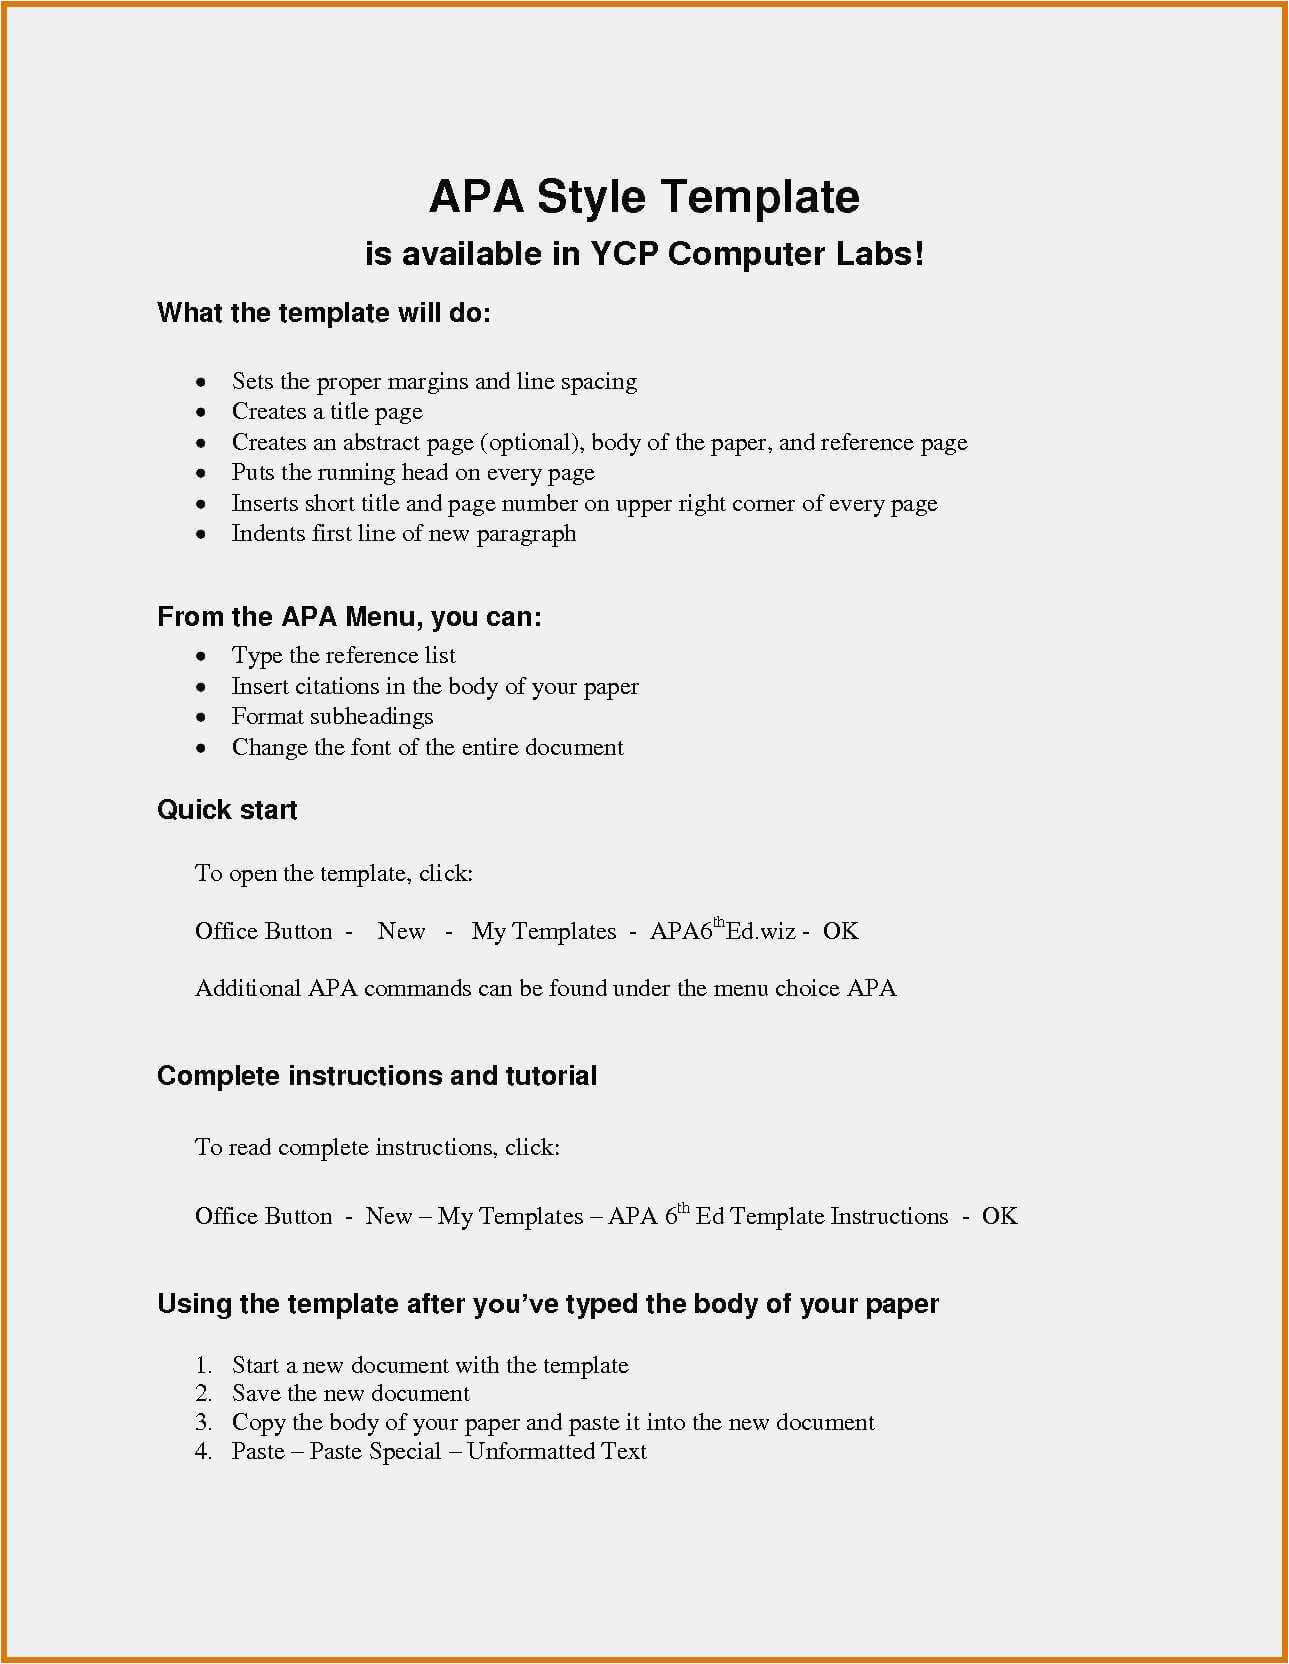 024 Apa Reference Page Template Word Style Paper Format Intended For Apa Template For Word 2010